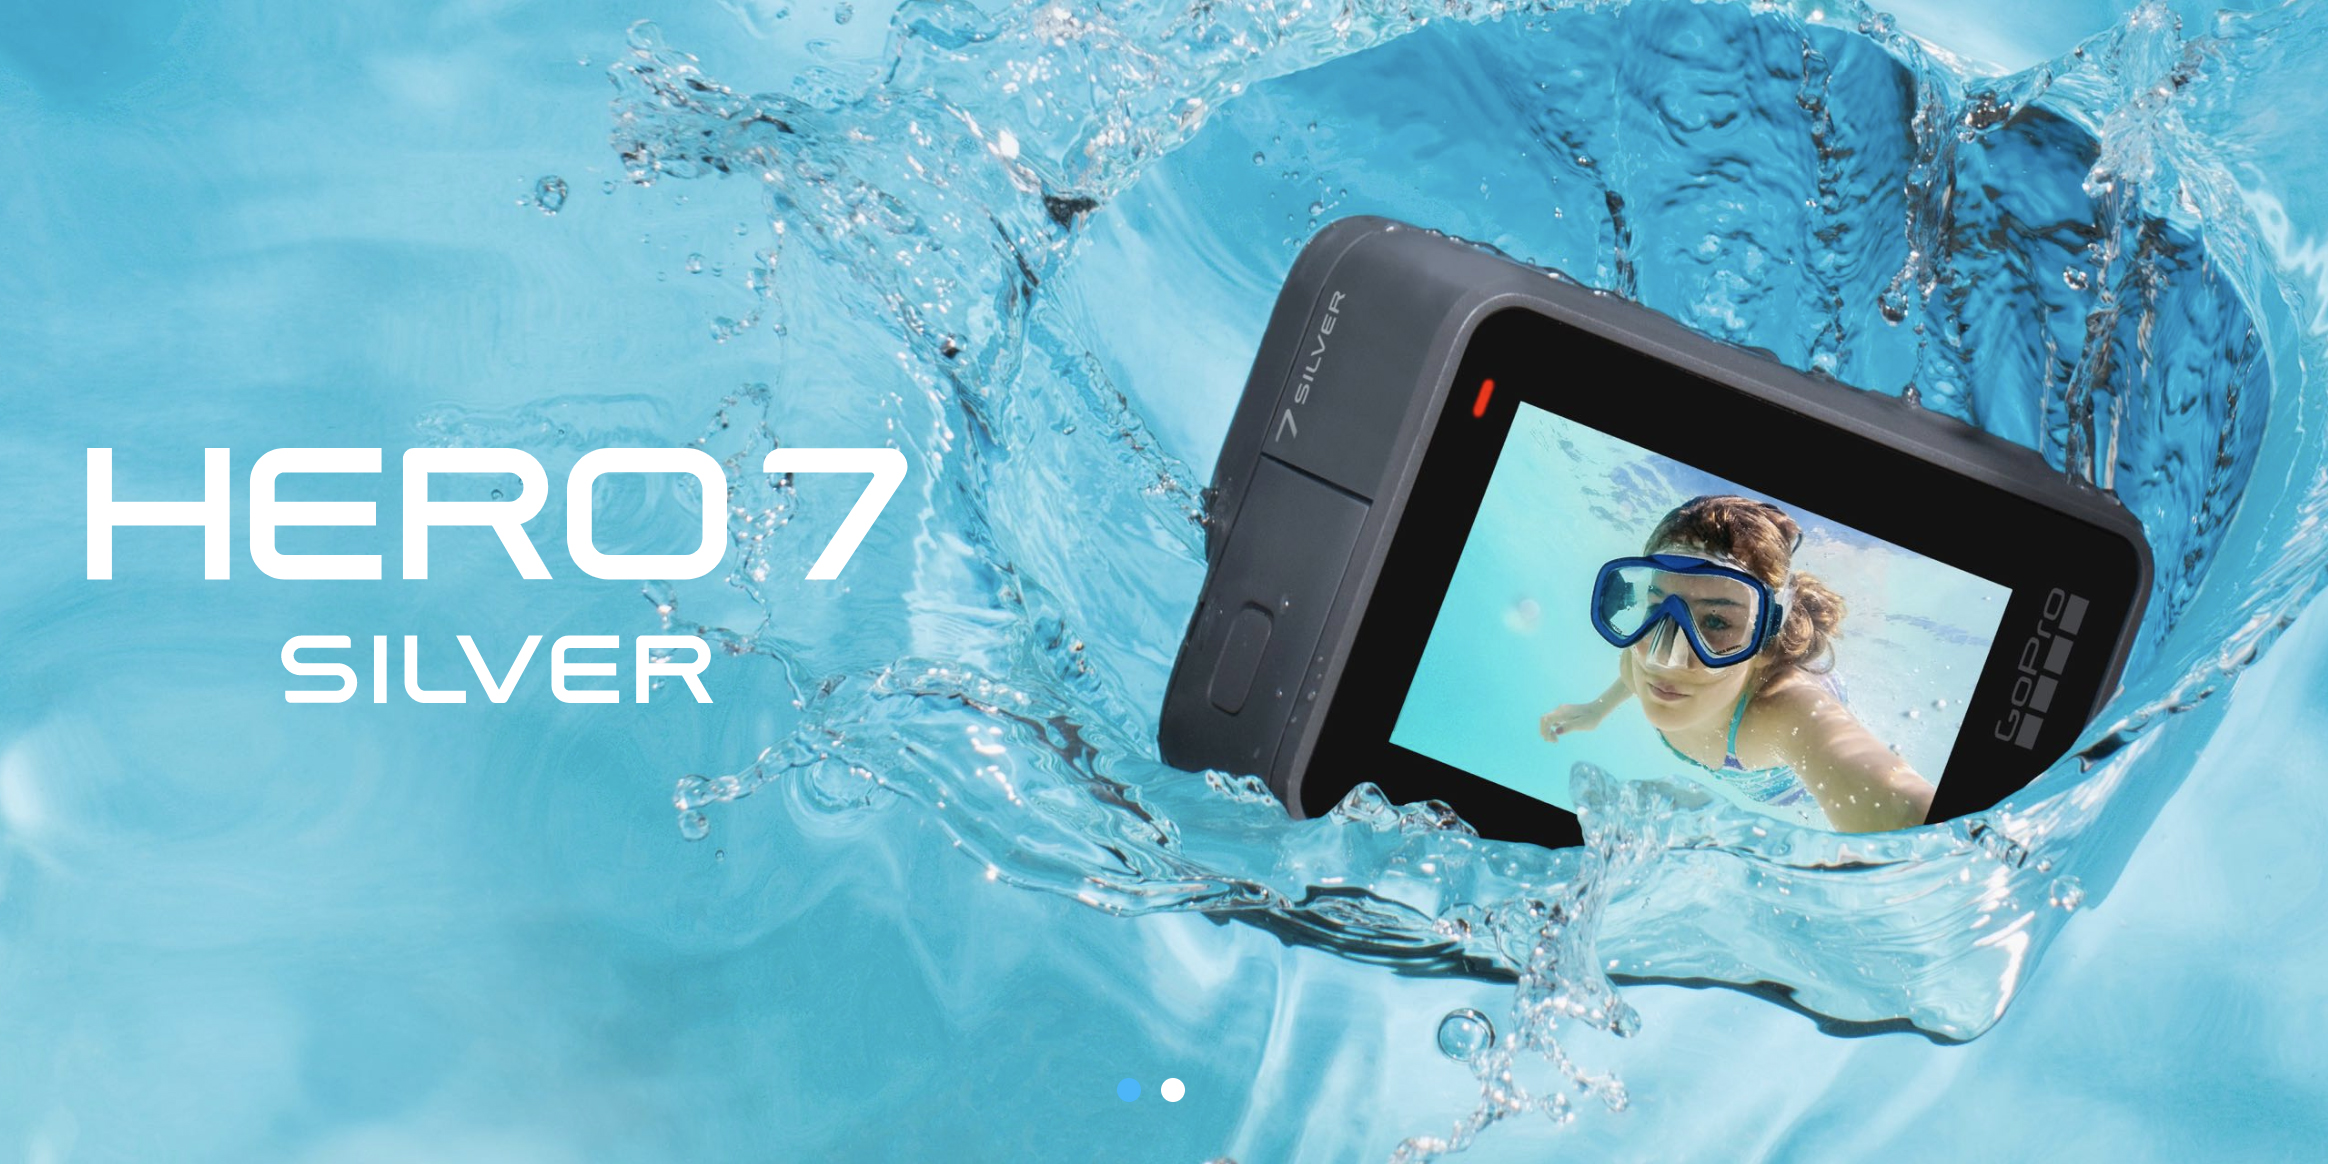 The 4K GoPro HERO7 Silver Action Cam just hit the Amazon all-time low at $199 (Reg. up to $300)